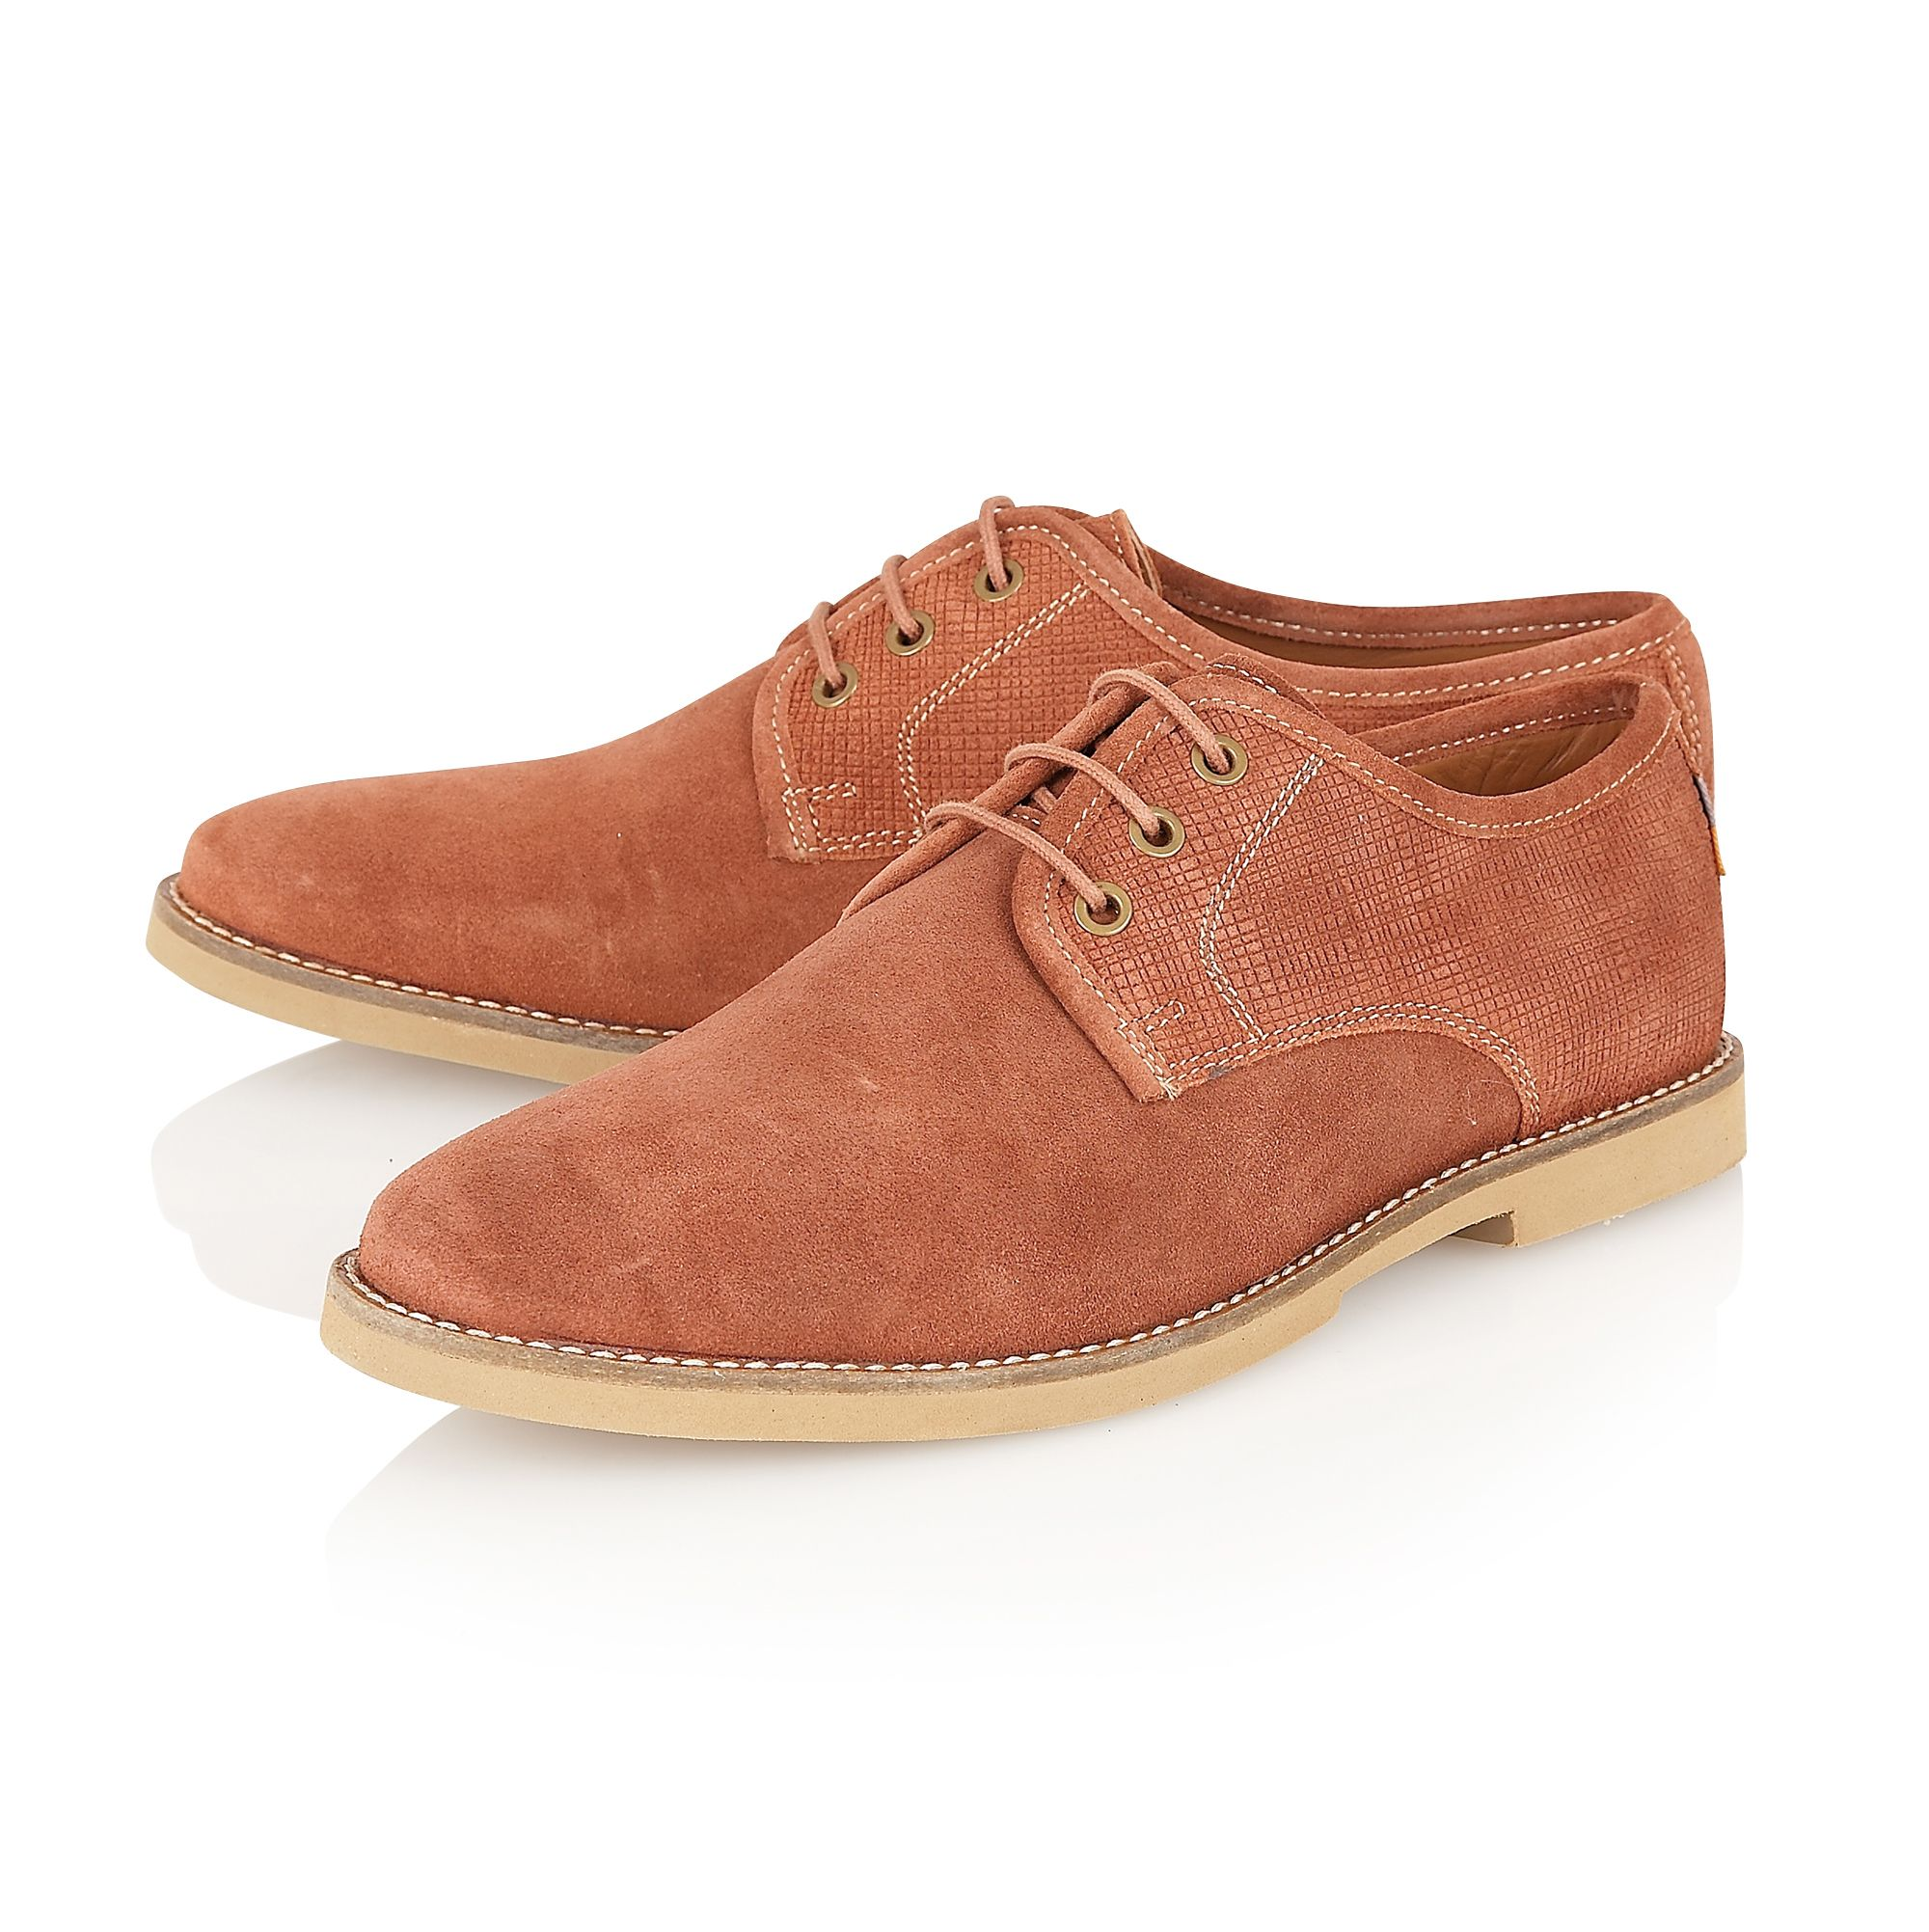 Thurrock round-toe shoes